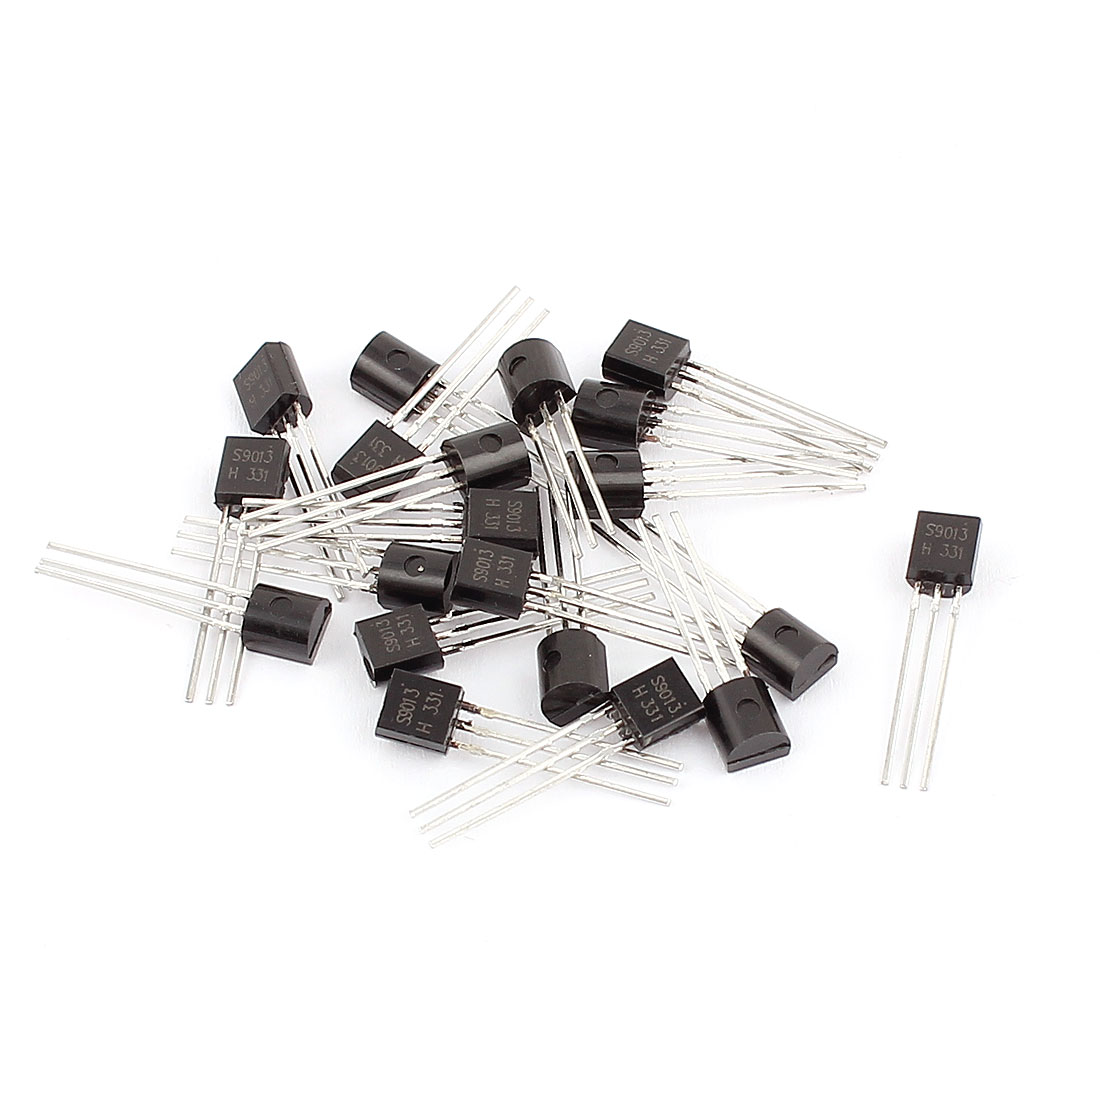 20 Pcs S9013 TO-92 NPN Bipolar Low Power Junction Transistors 40V 0.5A